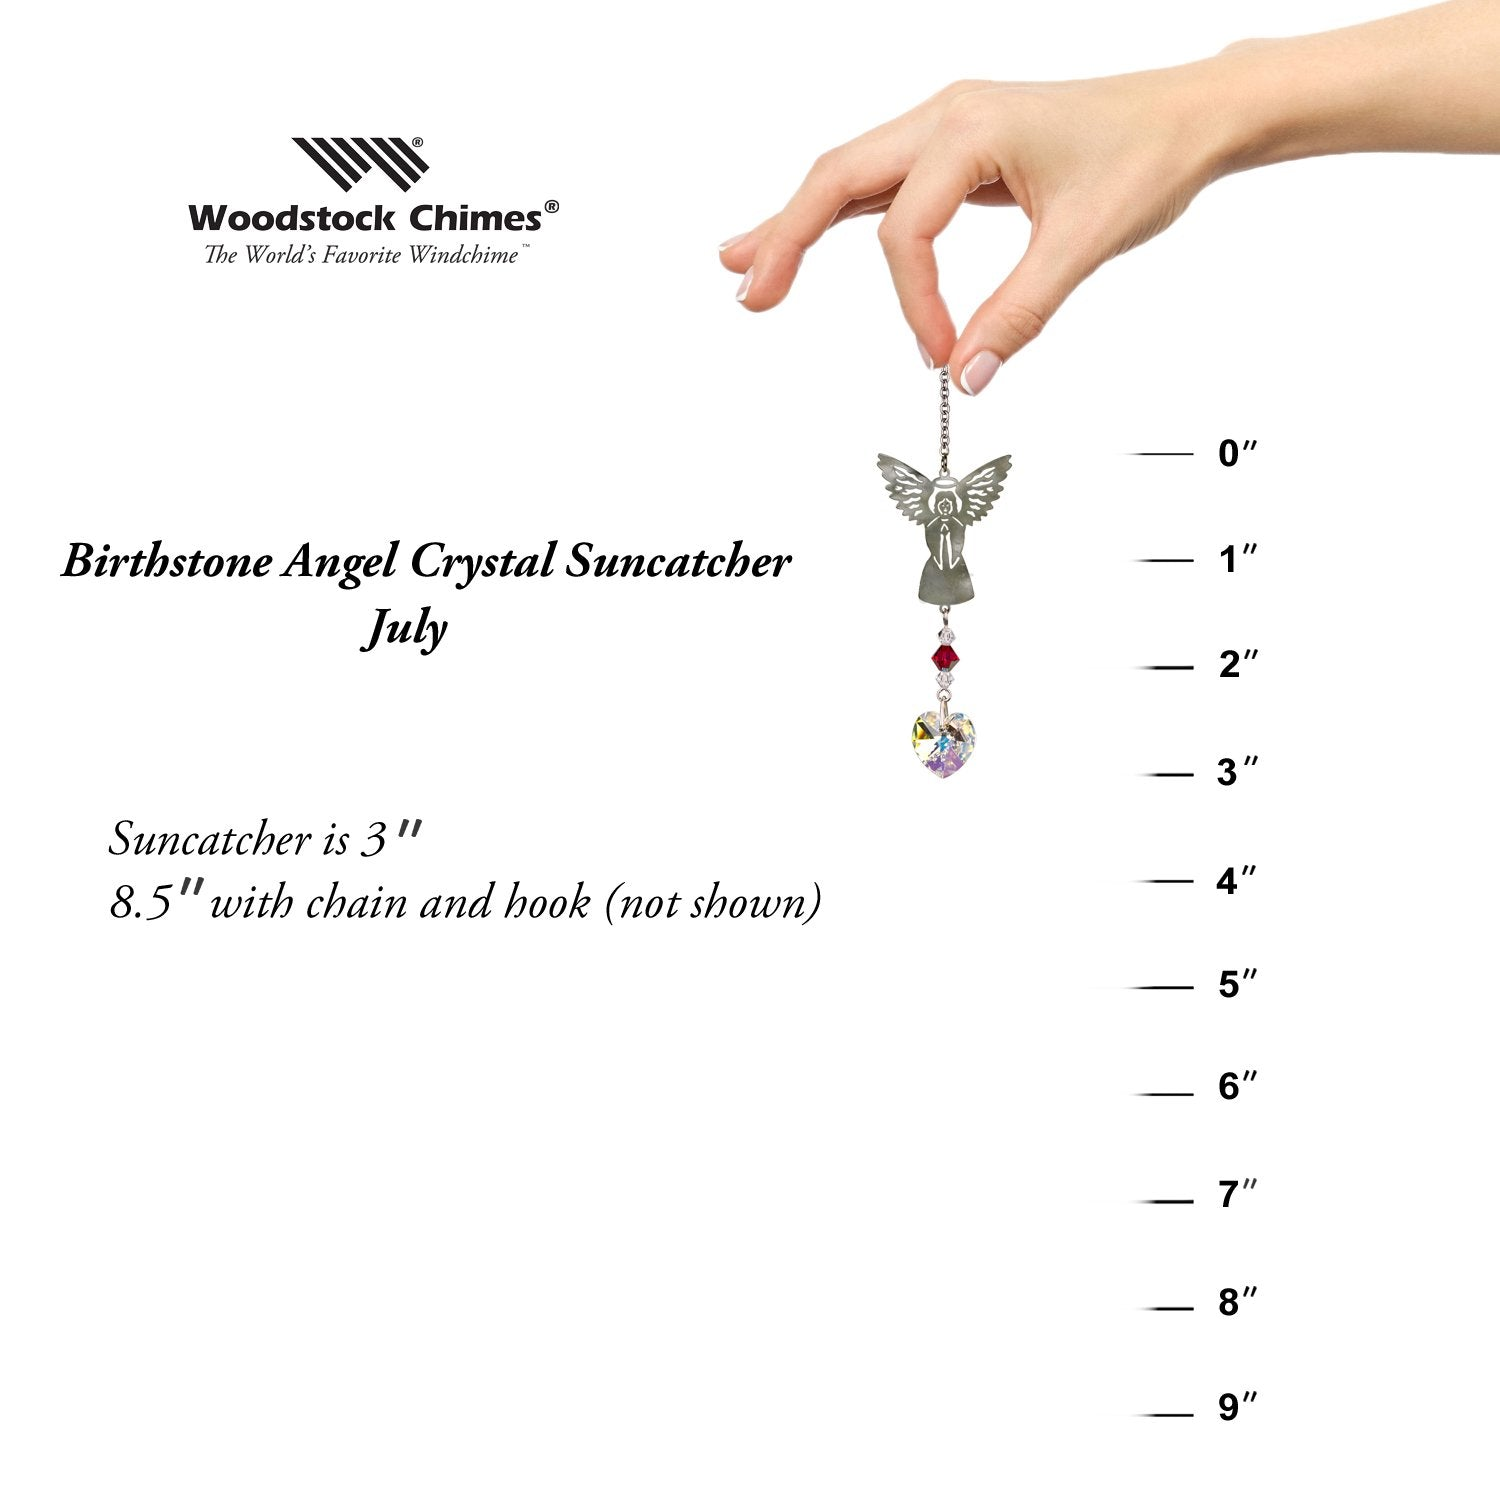 Birthstone Angel Crystal Suncatcher - July proportion image